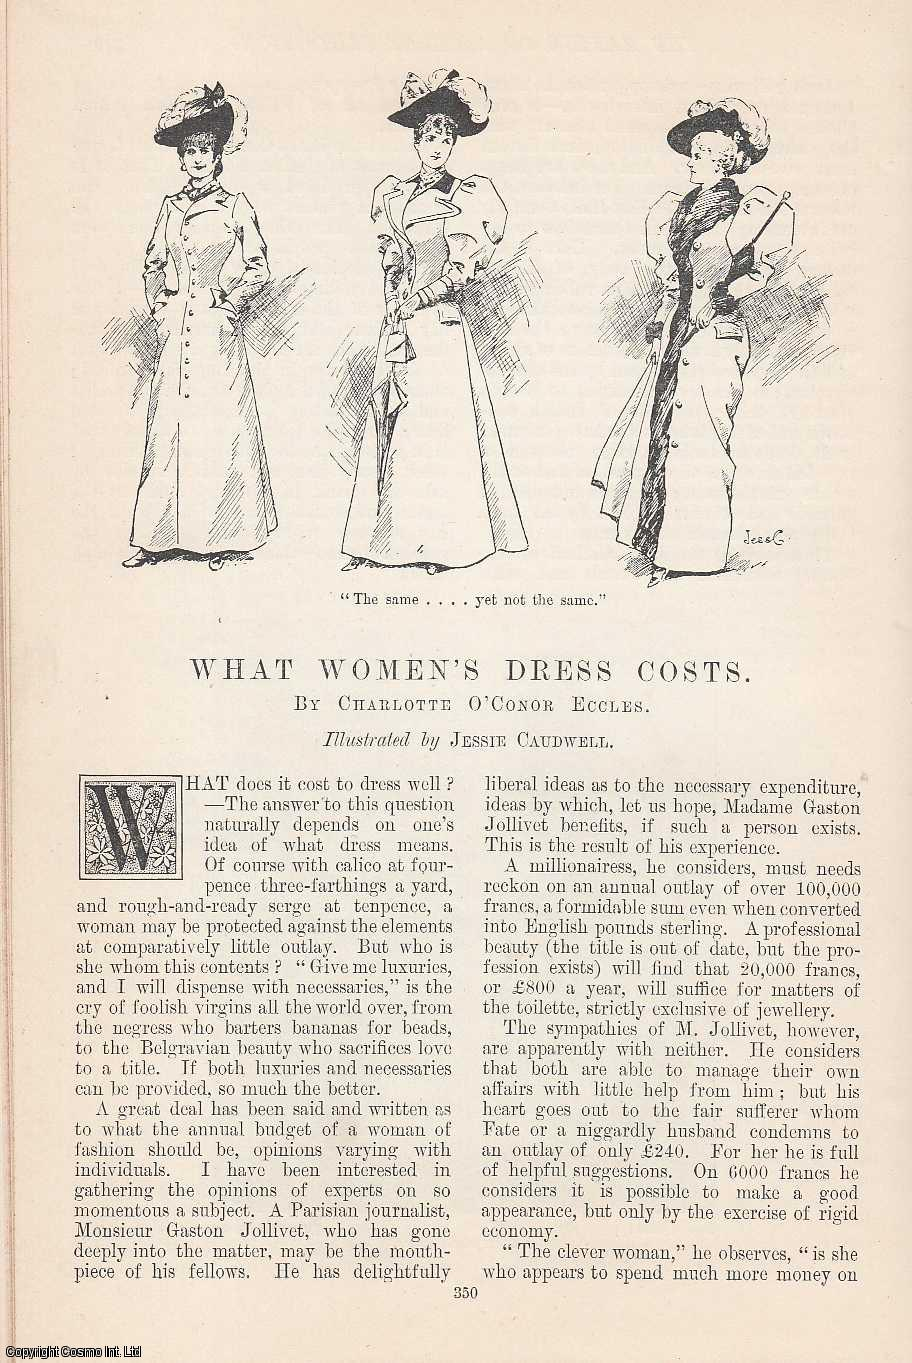 ECCLES, CHARLOTTE O'CONOR - What Women's Dress Costs. Illustrated by Jessie Caudwell. An original article from the Windsor Magazine, 1895.